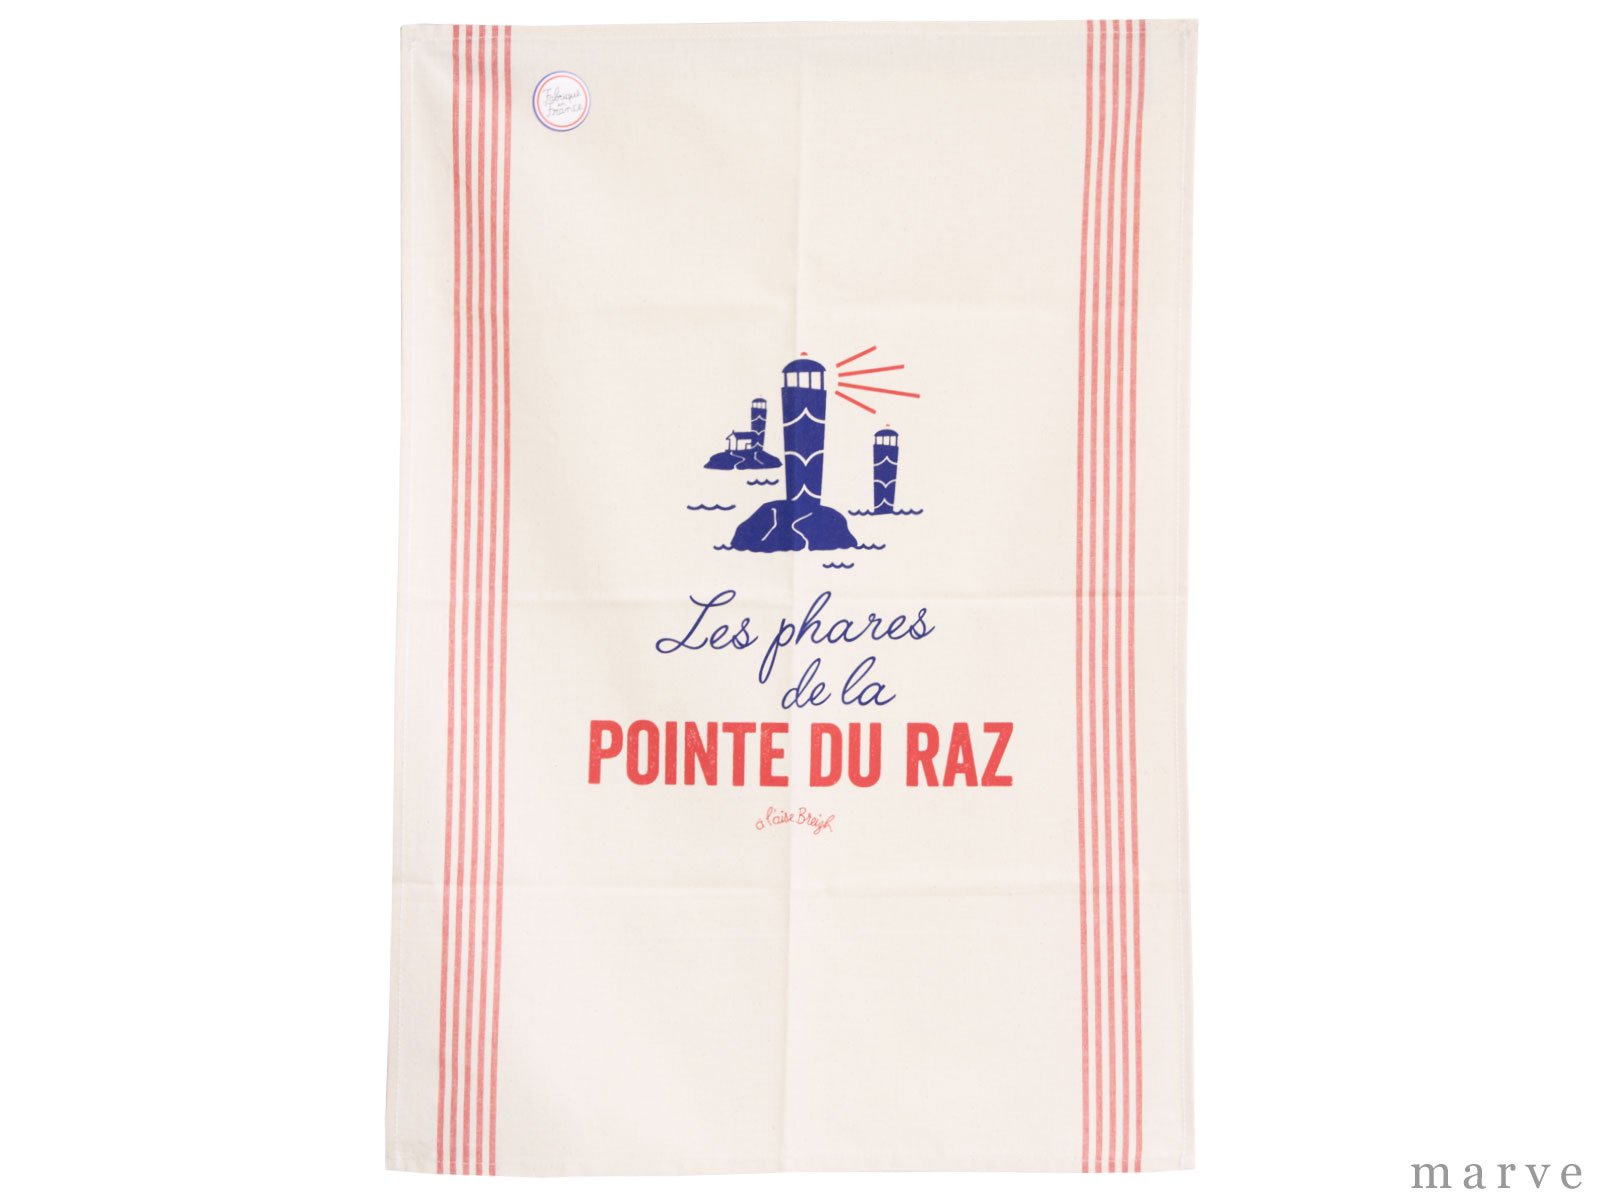 mp coffee gear キッチンタオル トーション POINTE DU RAZ ルージュ【フランス製】<img class='new_mark_img2' src='https://img.shop-pro.jp/img/new/icons1.gif' style='border:none;display:inline;margin:0px;padding:0px;width:auto;' />